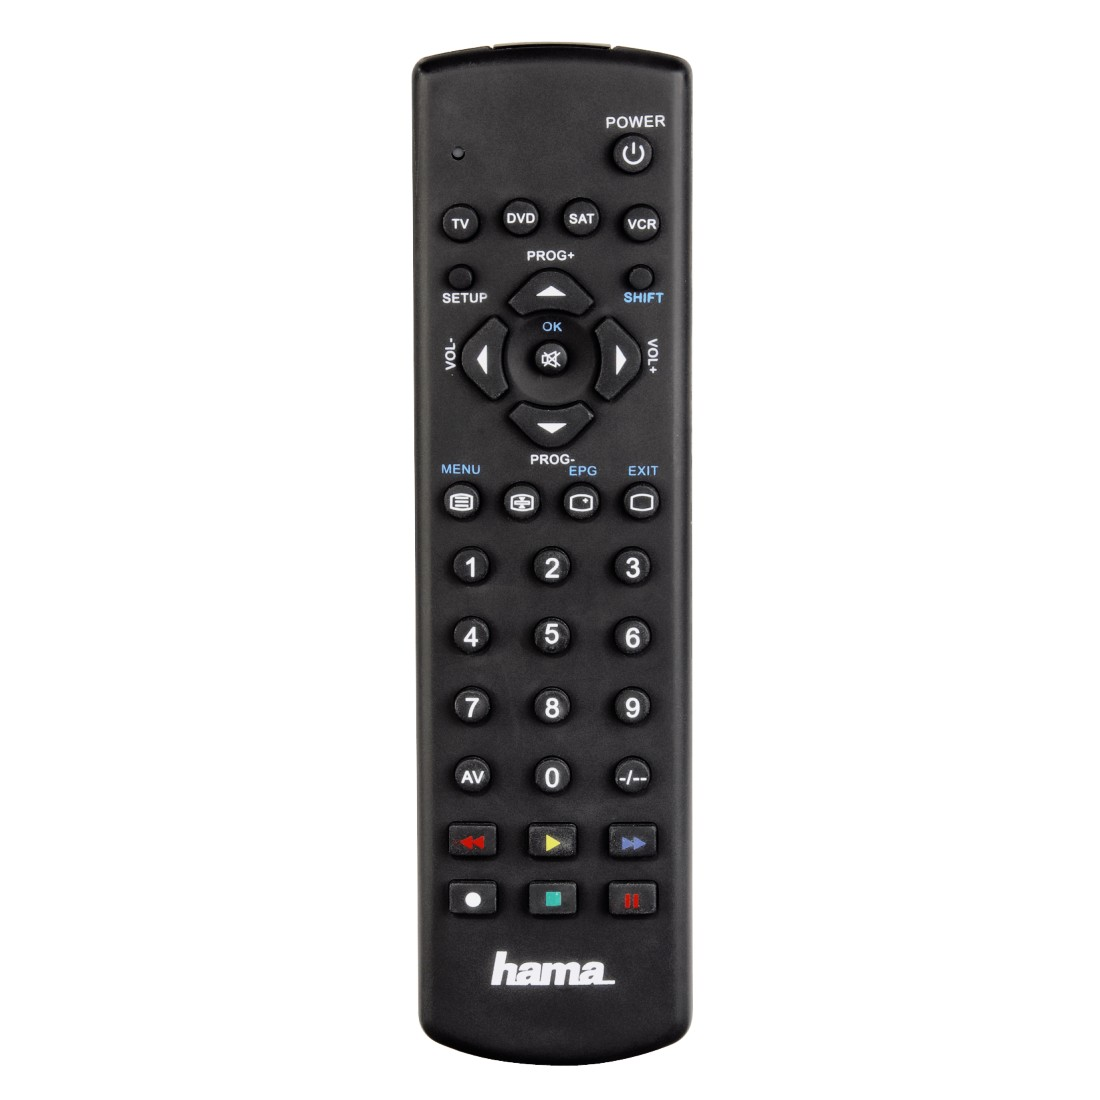 abx High-Res Image - Hama, Universal 4in1 Remote Control